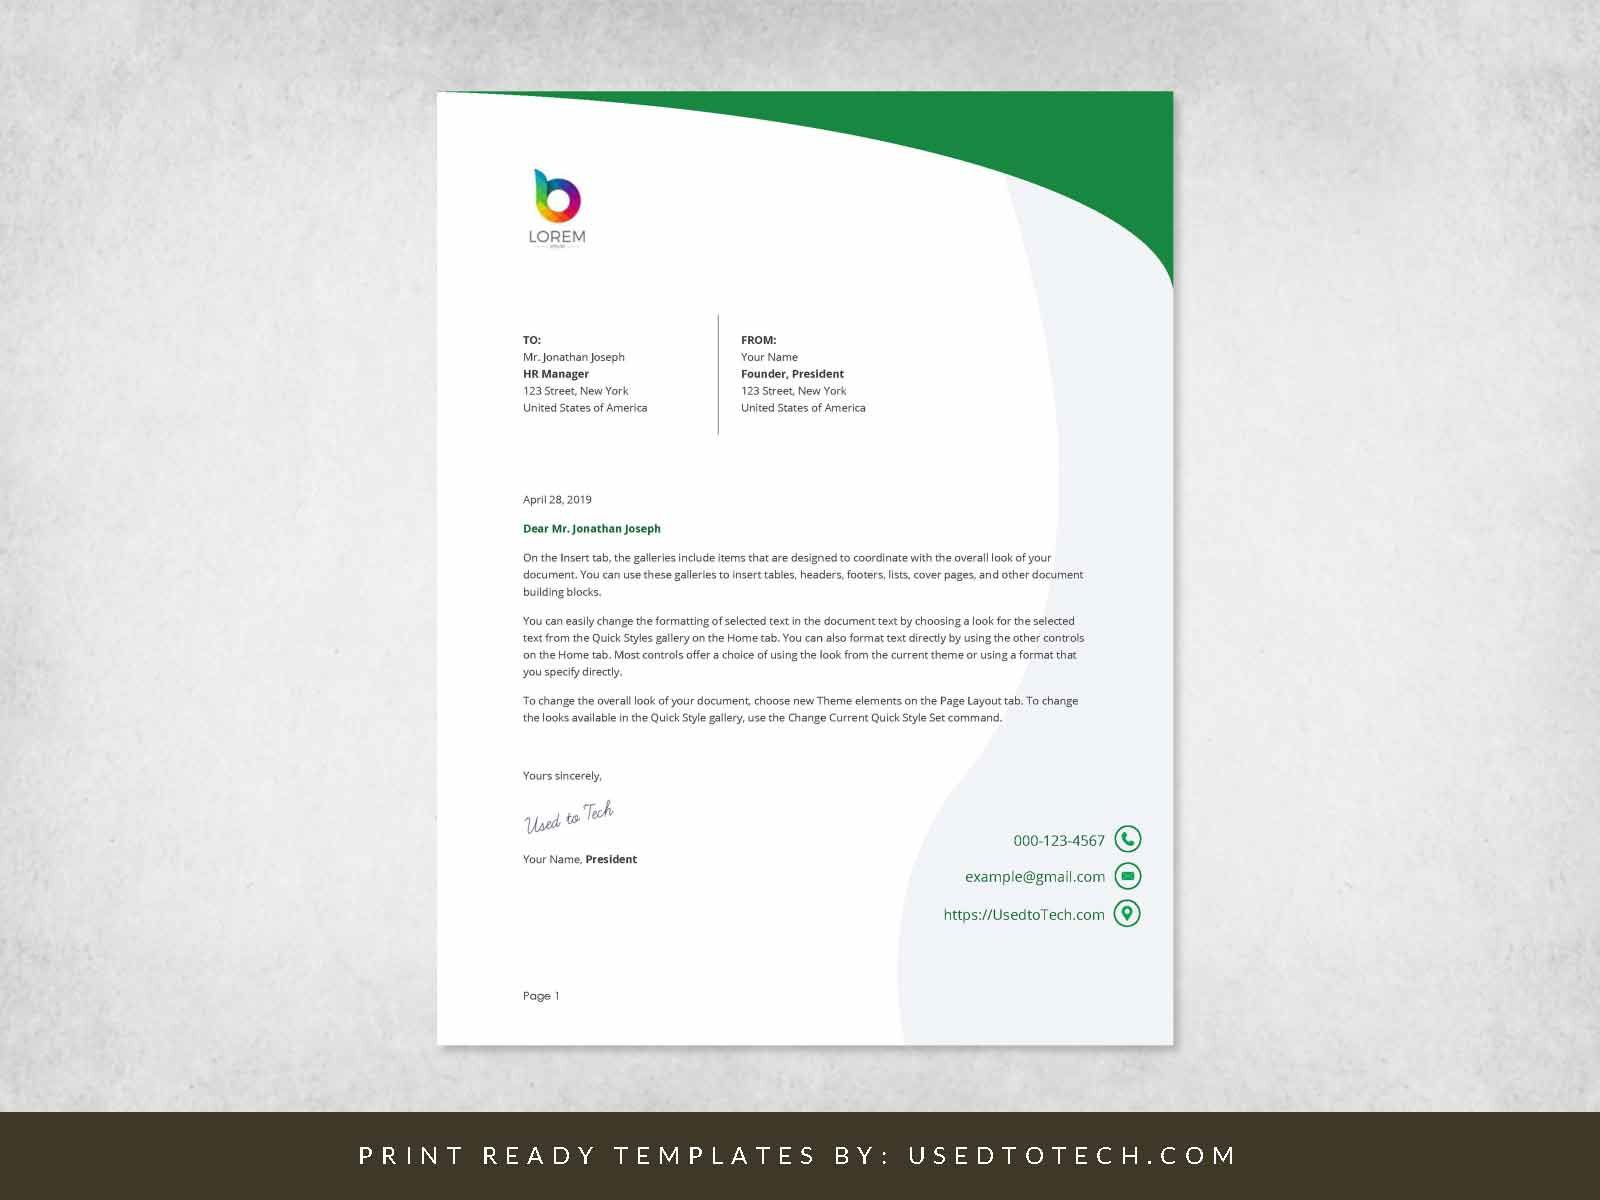 000 Simple Letterhead Template Free Download Word Highest Clarity  Restaurant Microsoft Format InFull